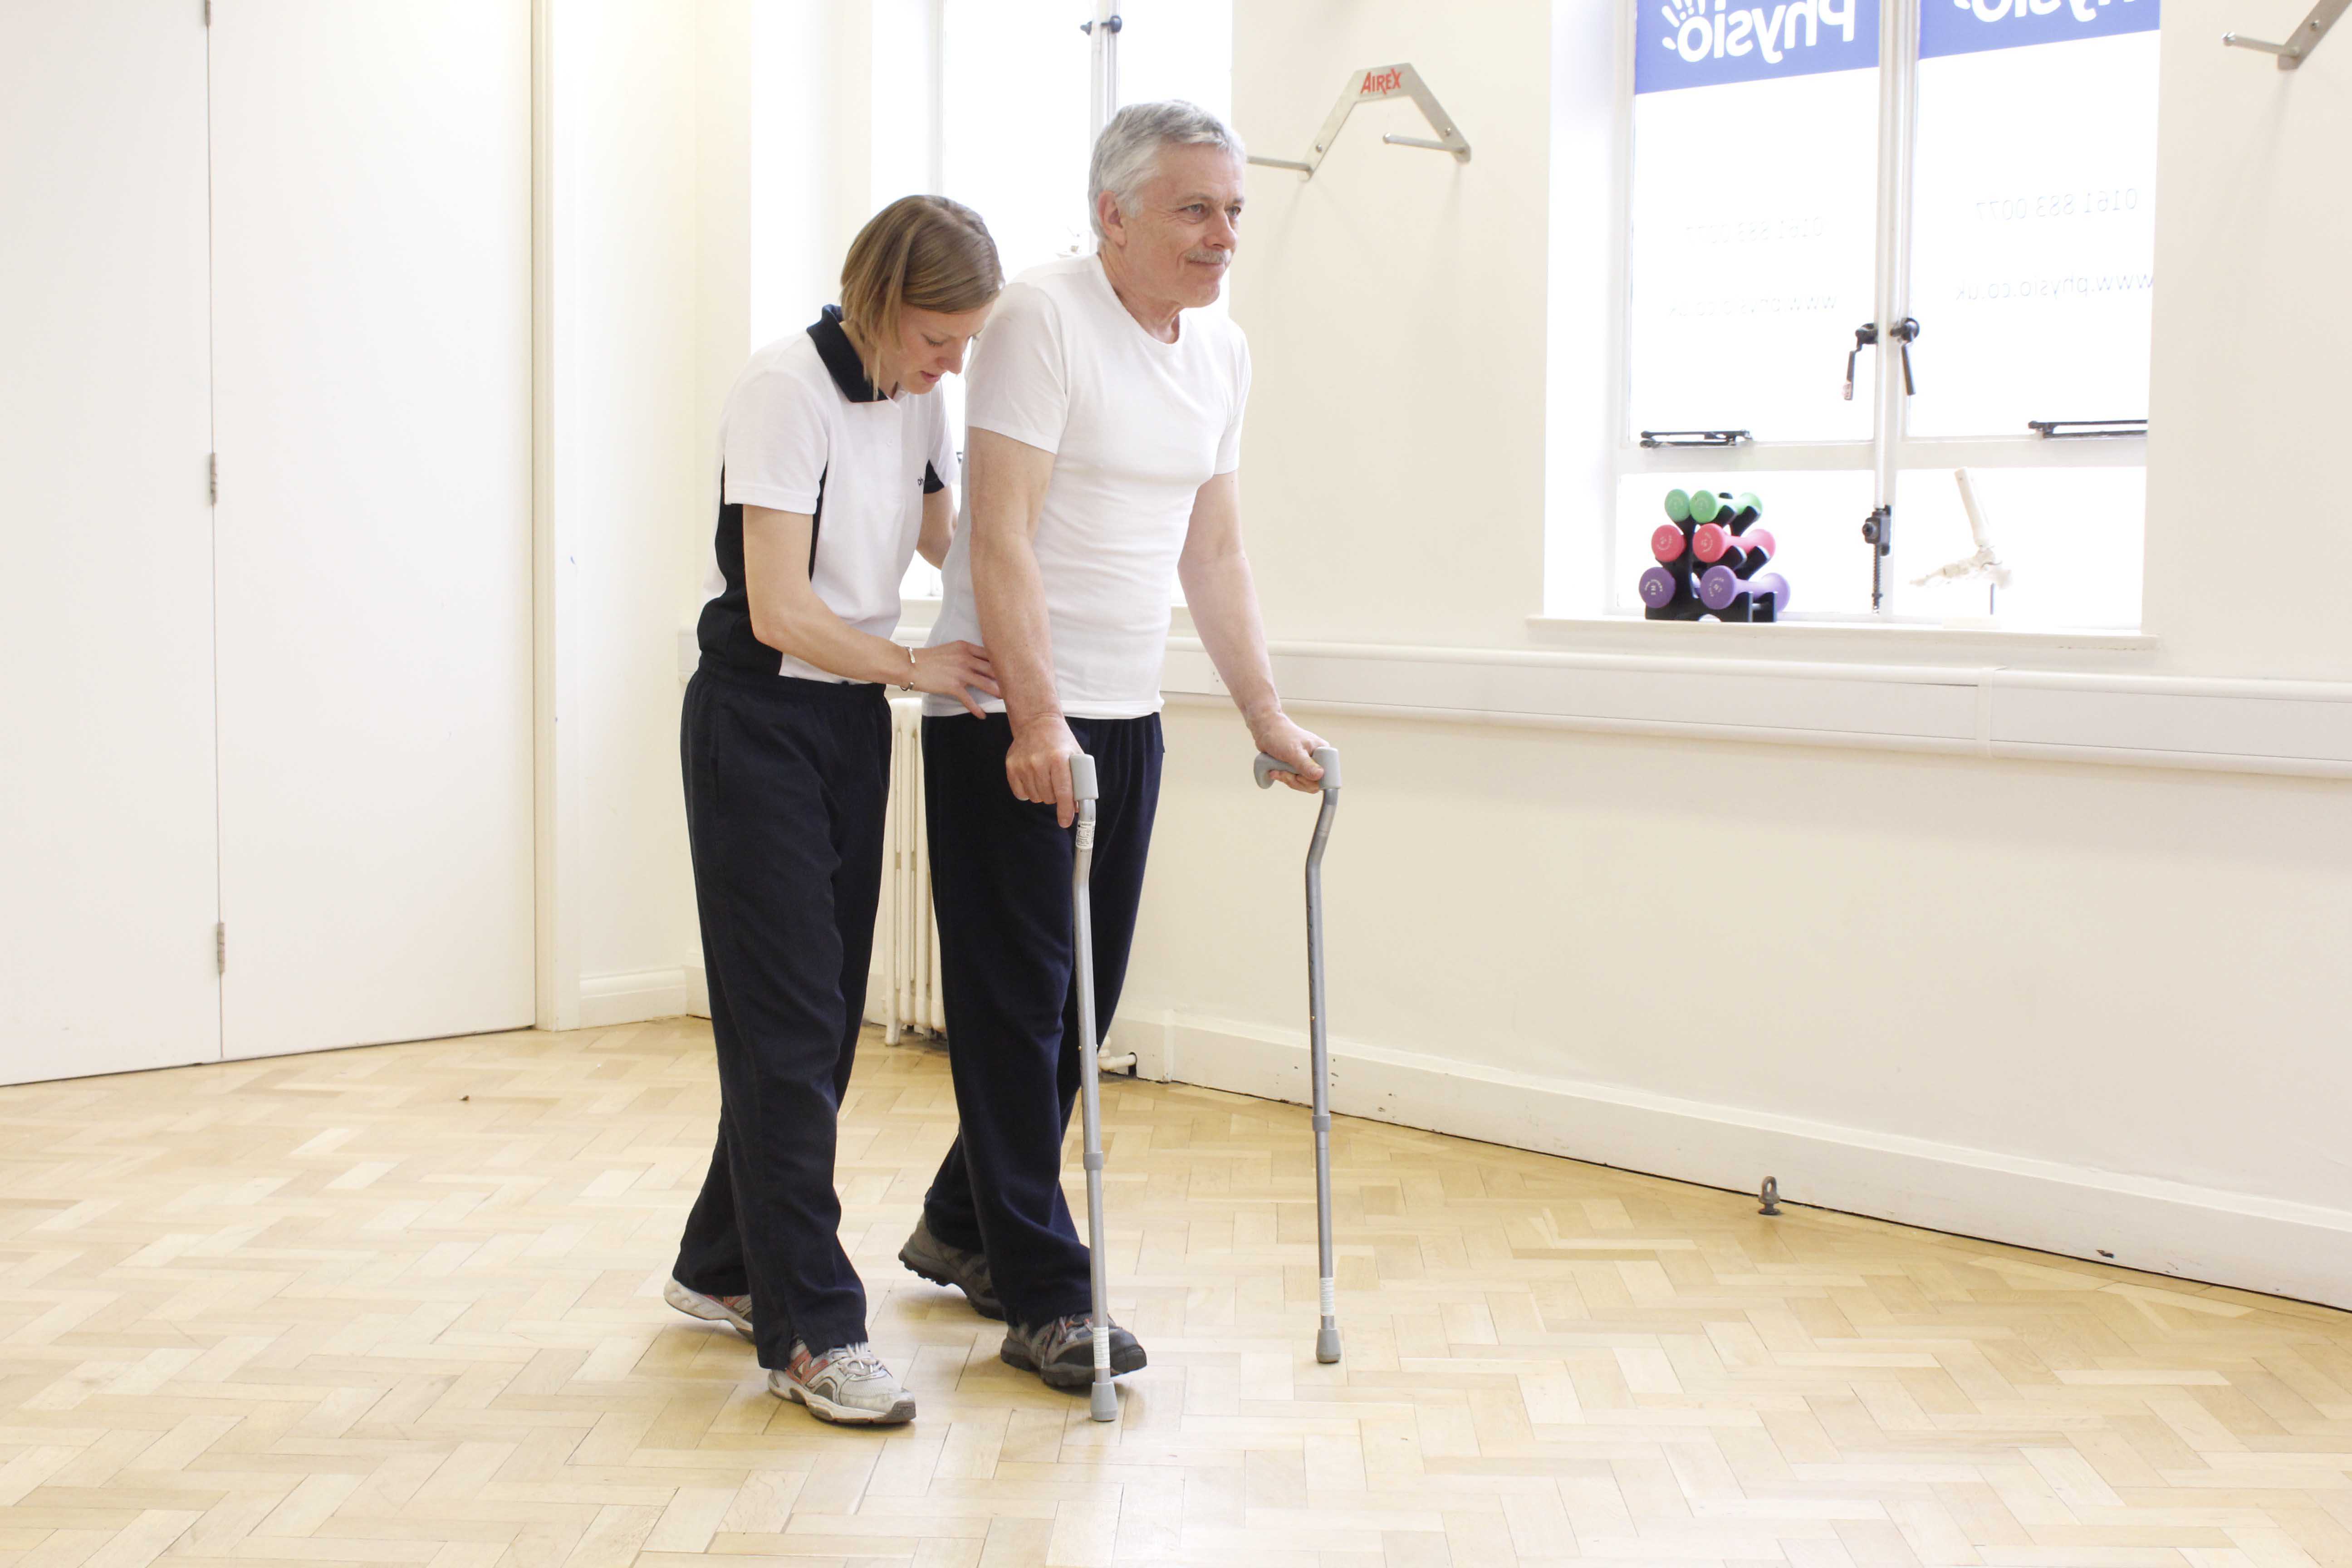 Mobility exercises using two walking sticks supervised by a neurological physiotherapist